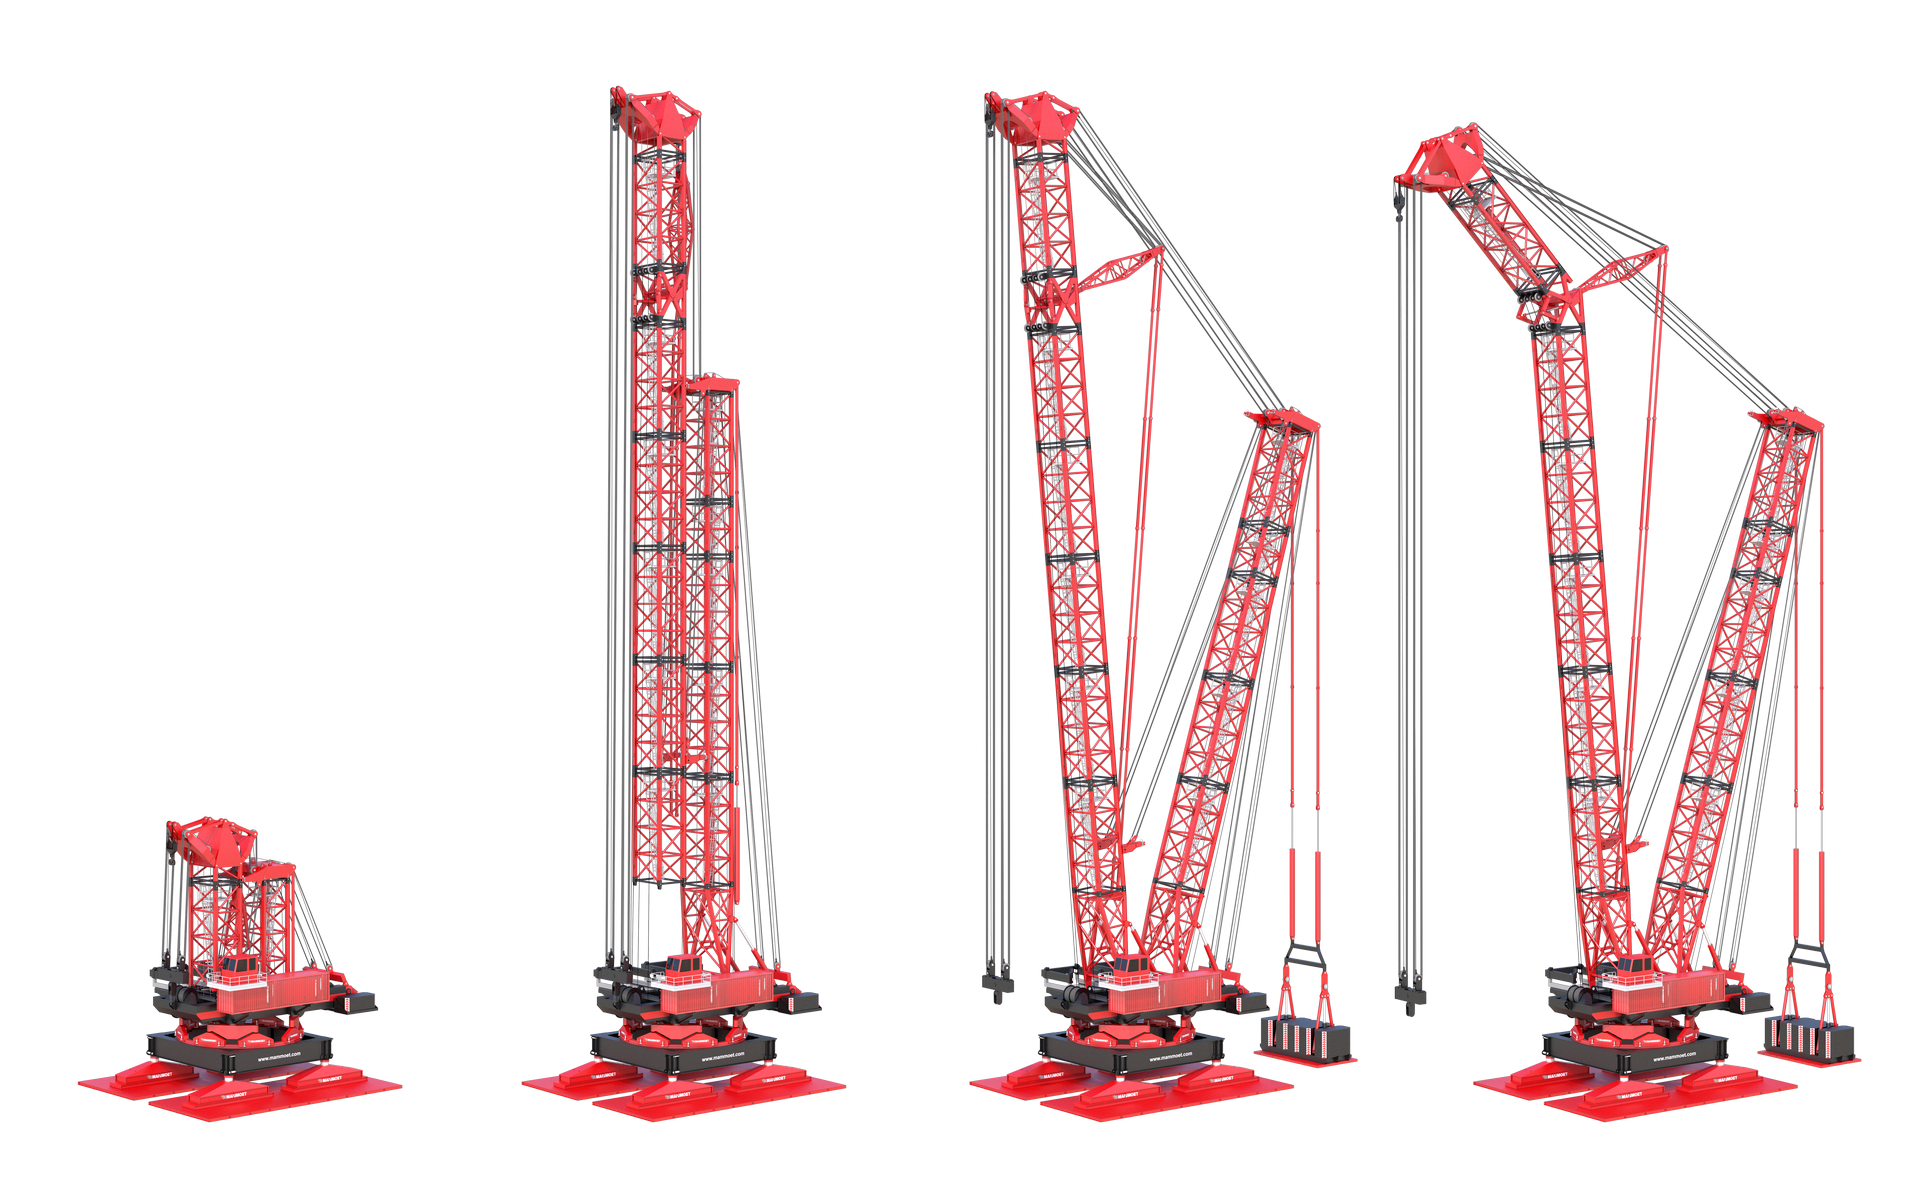 Due to the innovative vertical assembly method, the Y-Frame Focus can be fully assembled from an extremely small base.